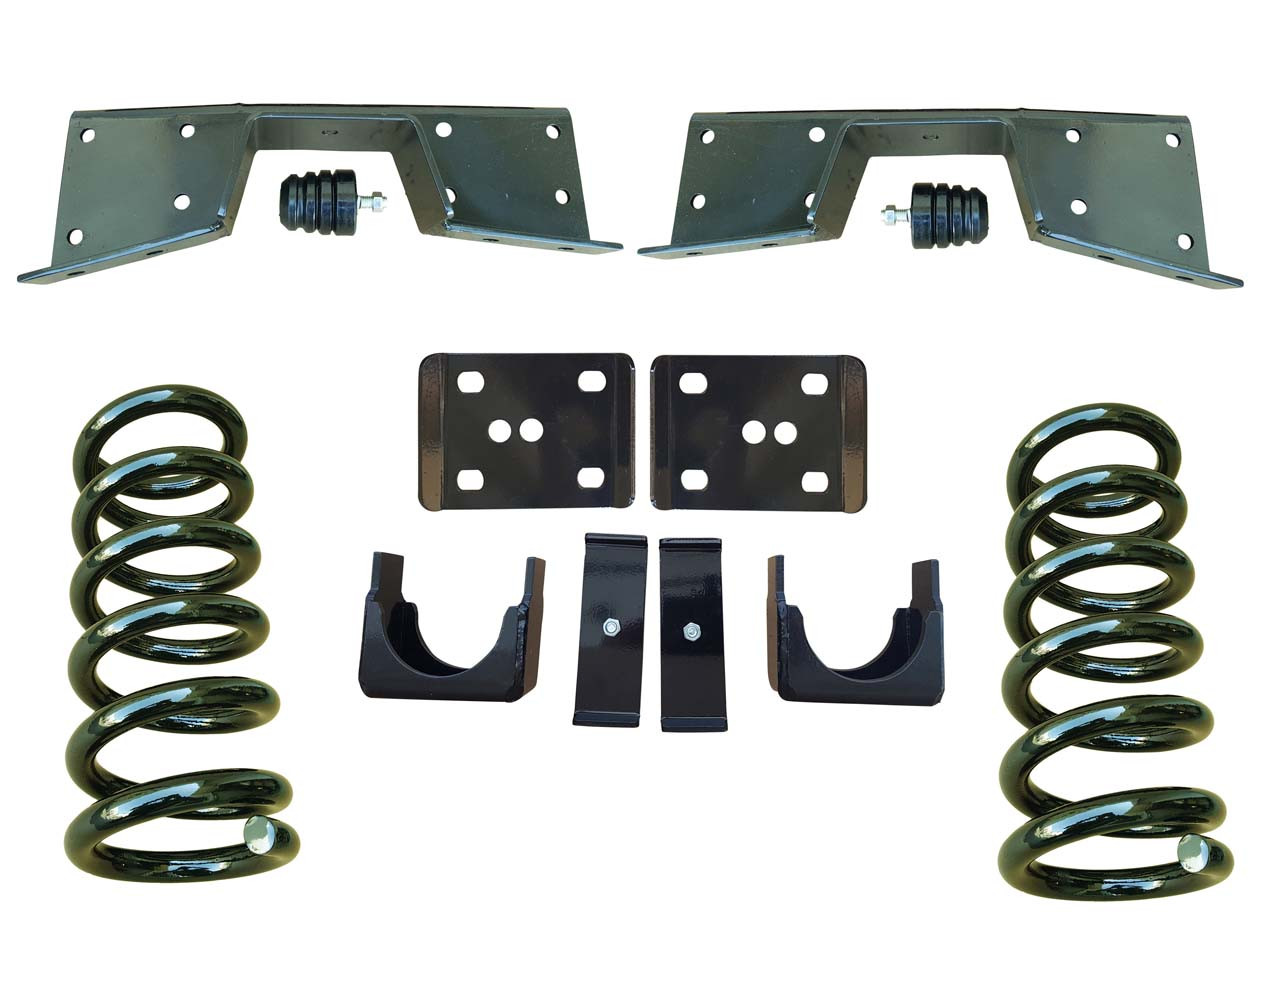 3/6 Lowering Kit and C-Notch for 99-00 Chevrolet Silverado